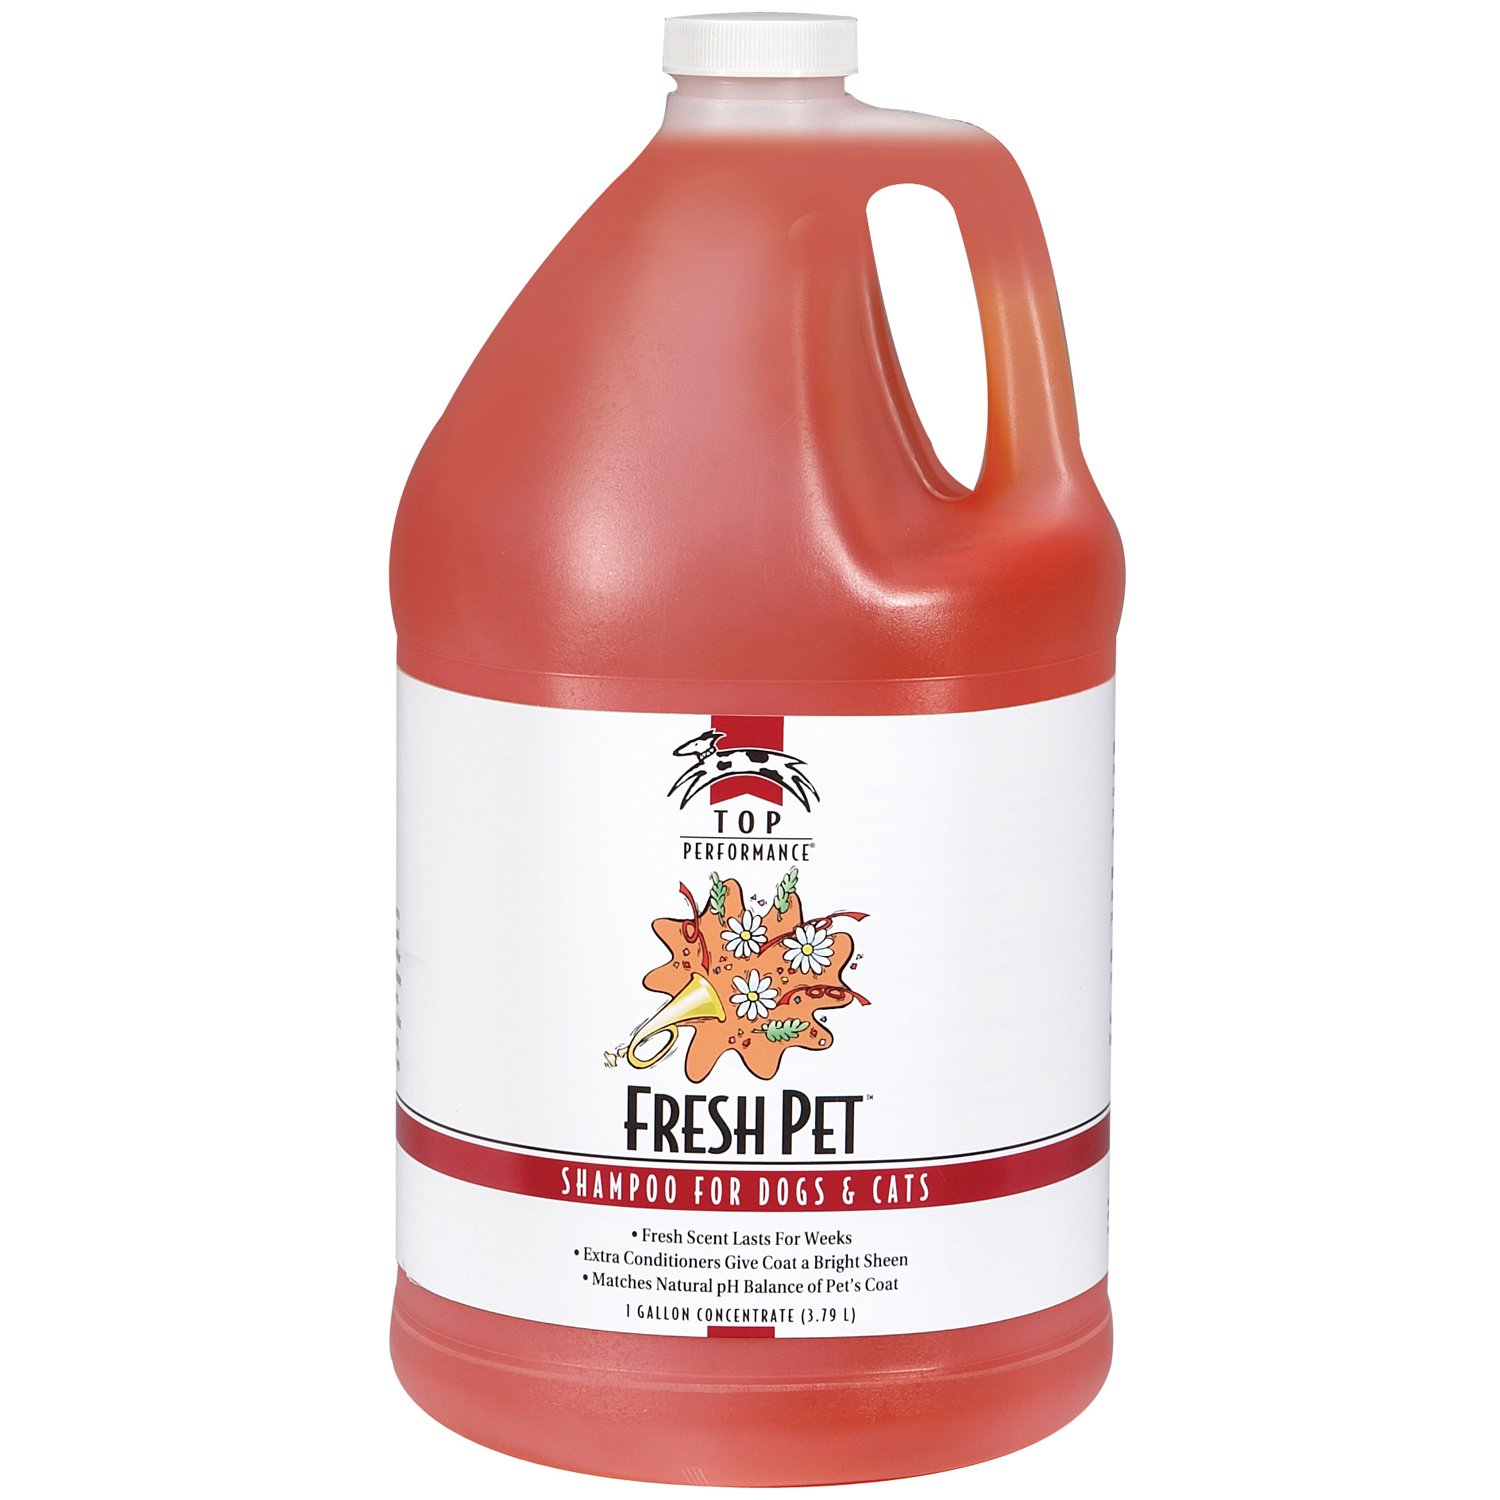 Top Performance Fresh Pet Shampoo, 1-Gallon by Top Performance